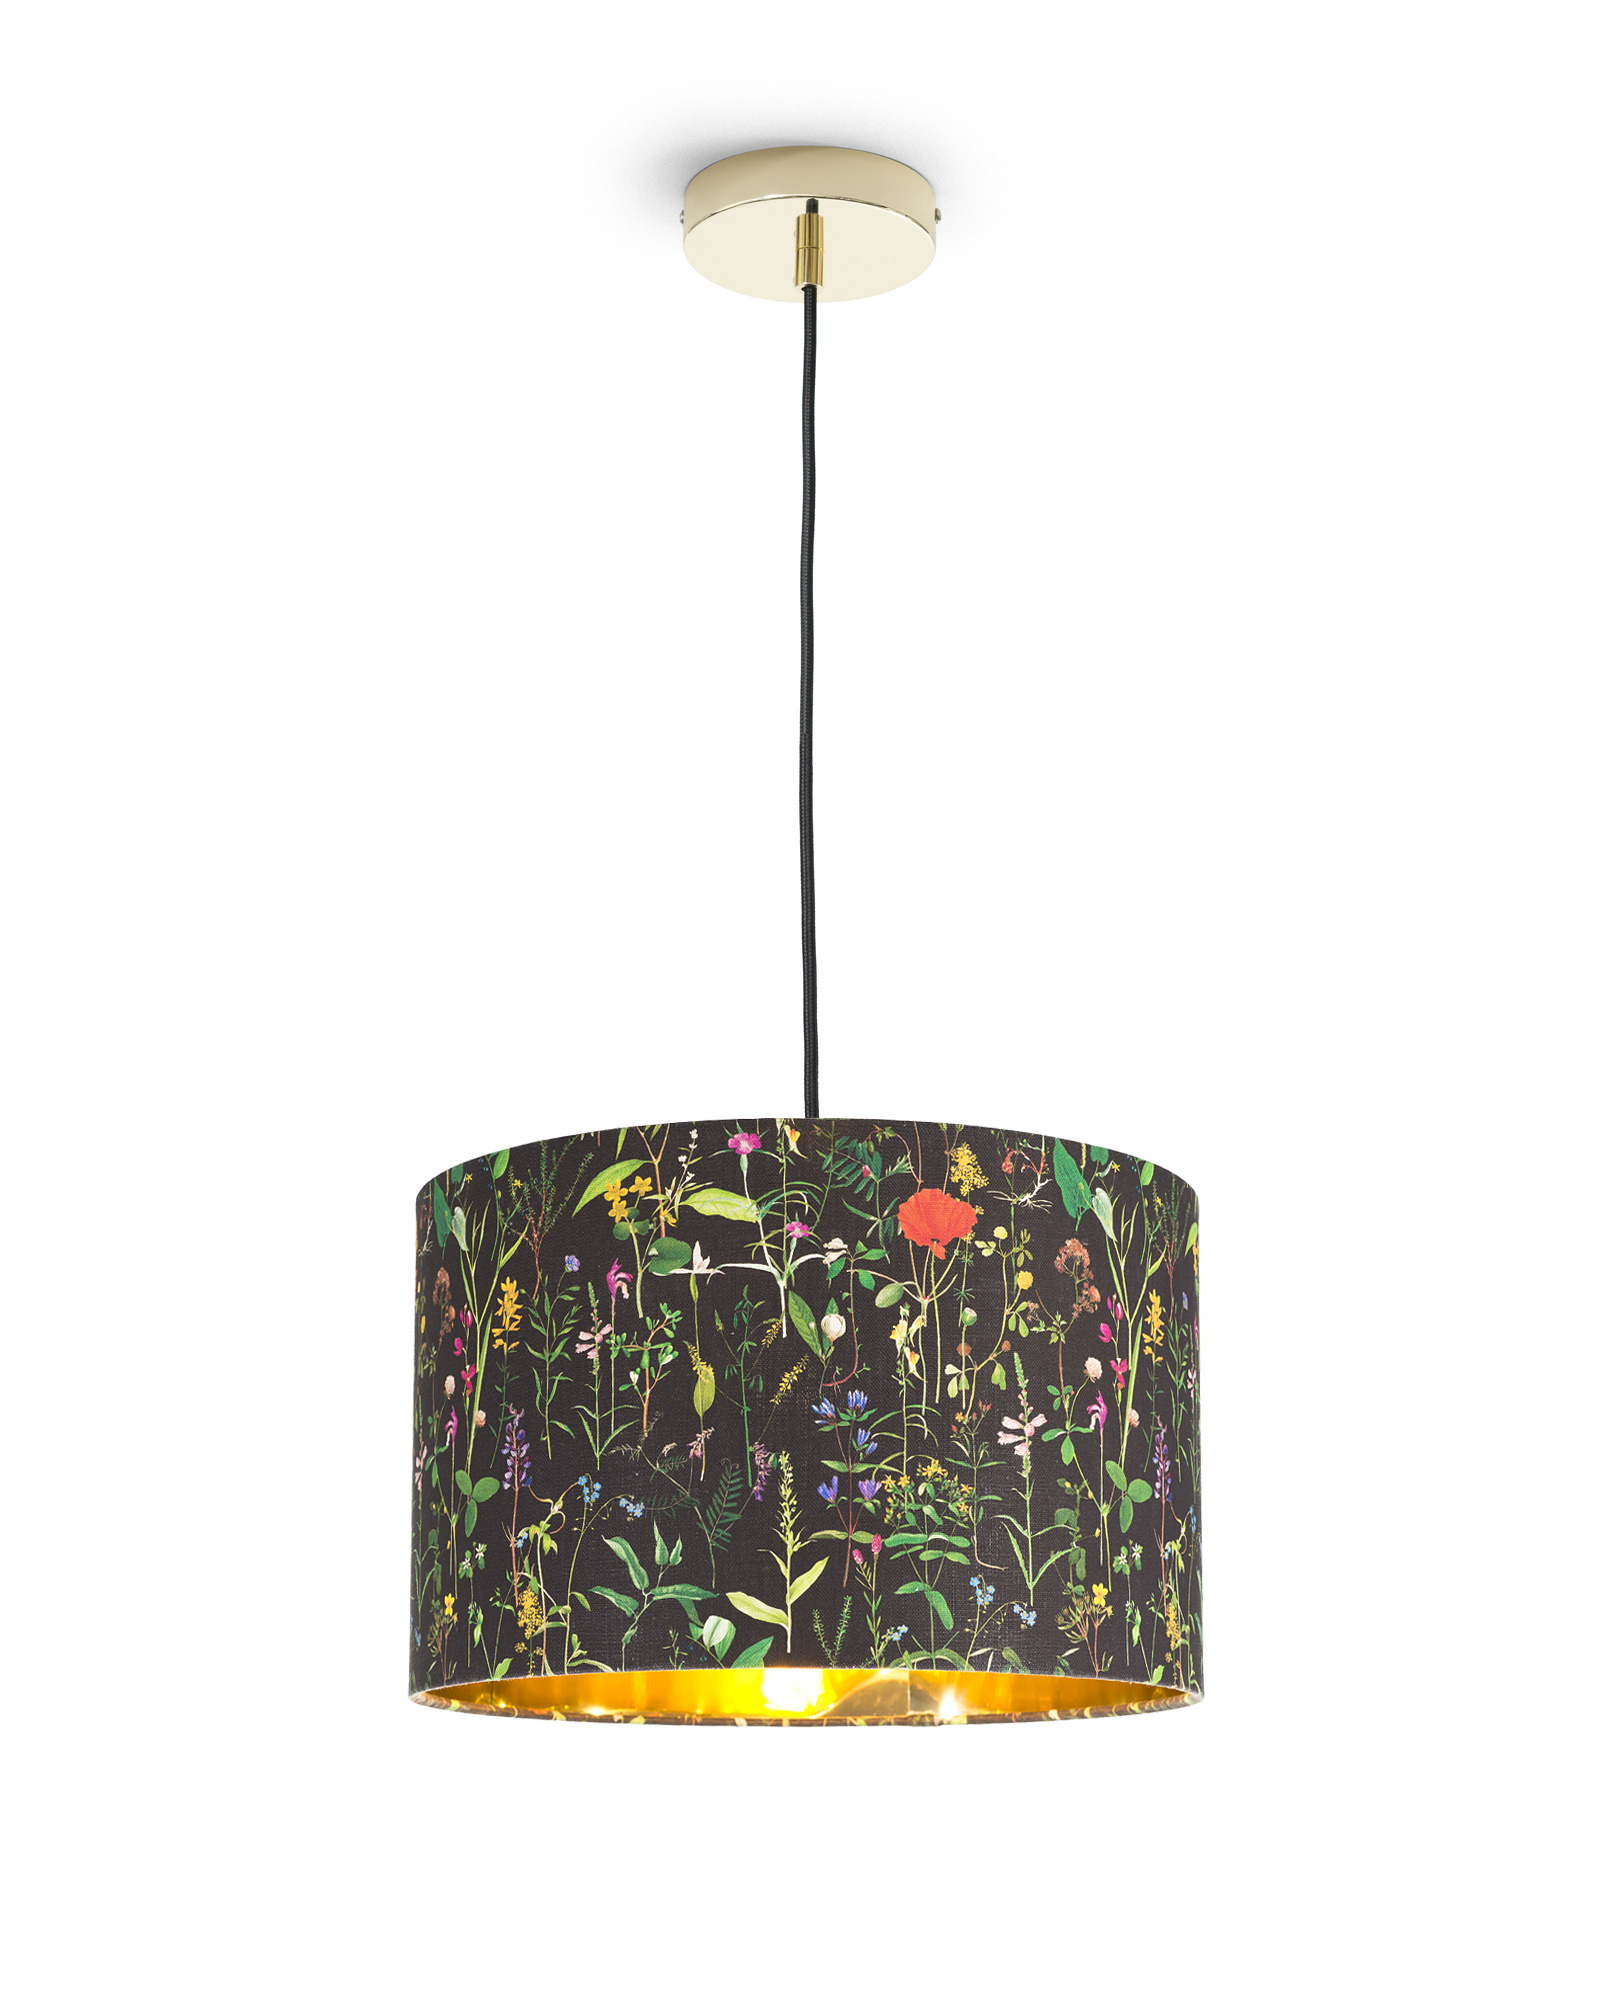 AQUAFLEUR Anthracite Pendant Light 45cm x 28cm